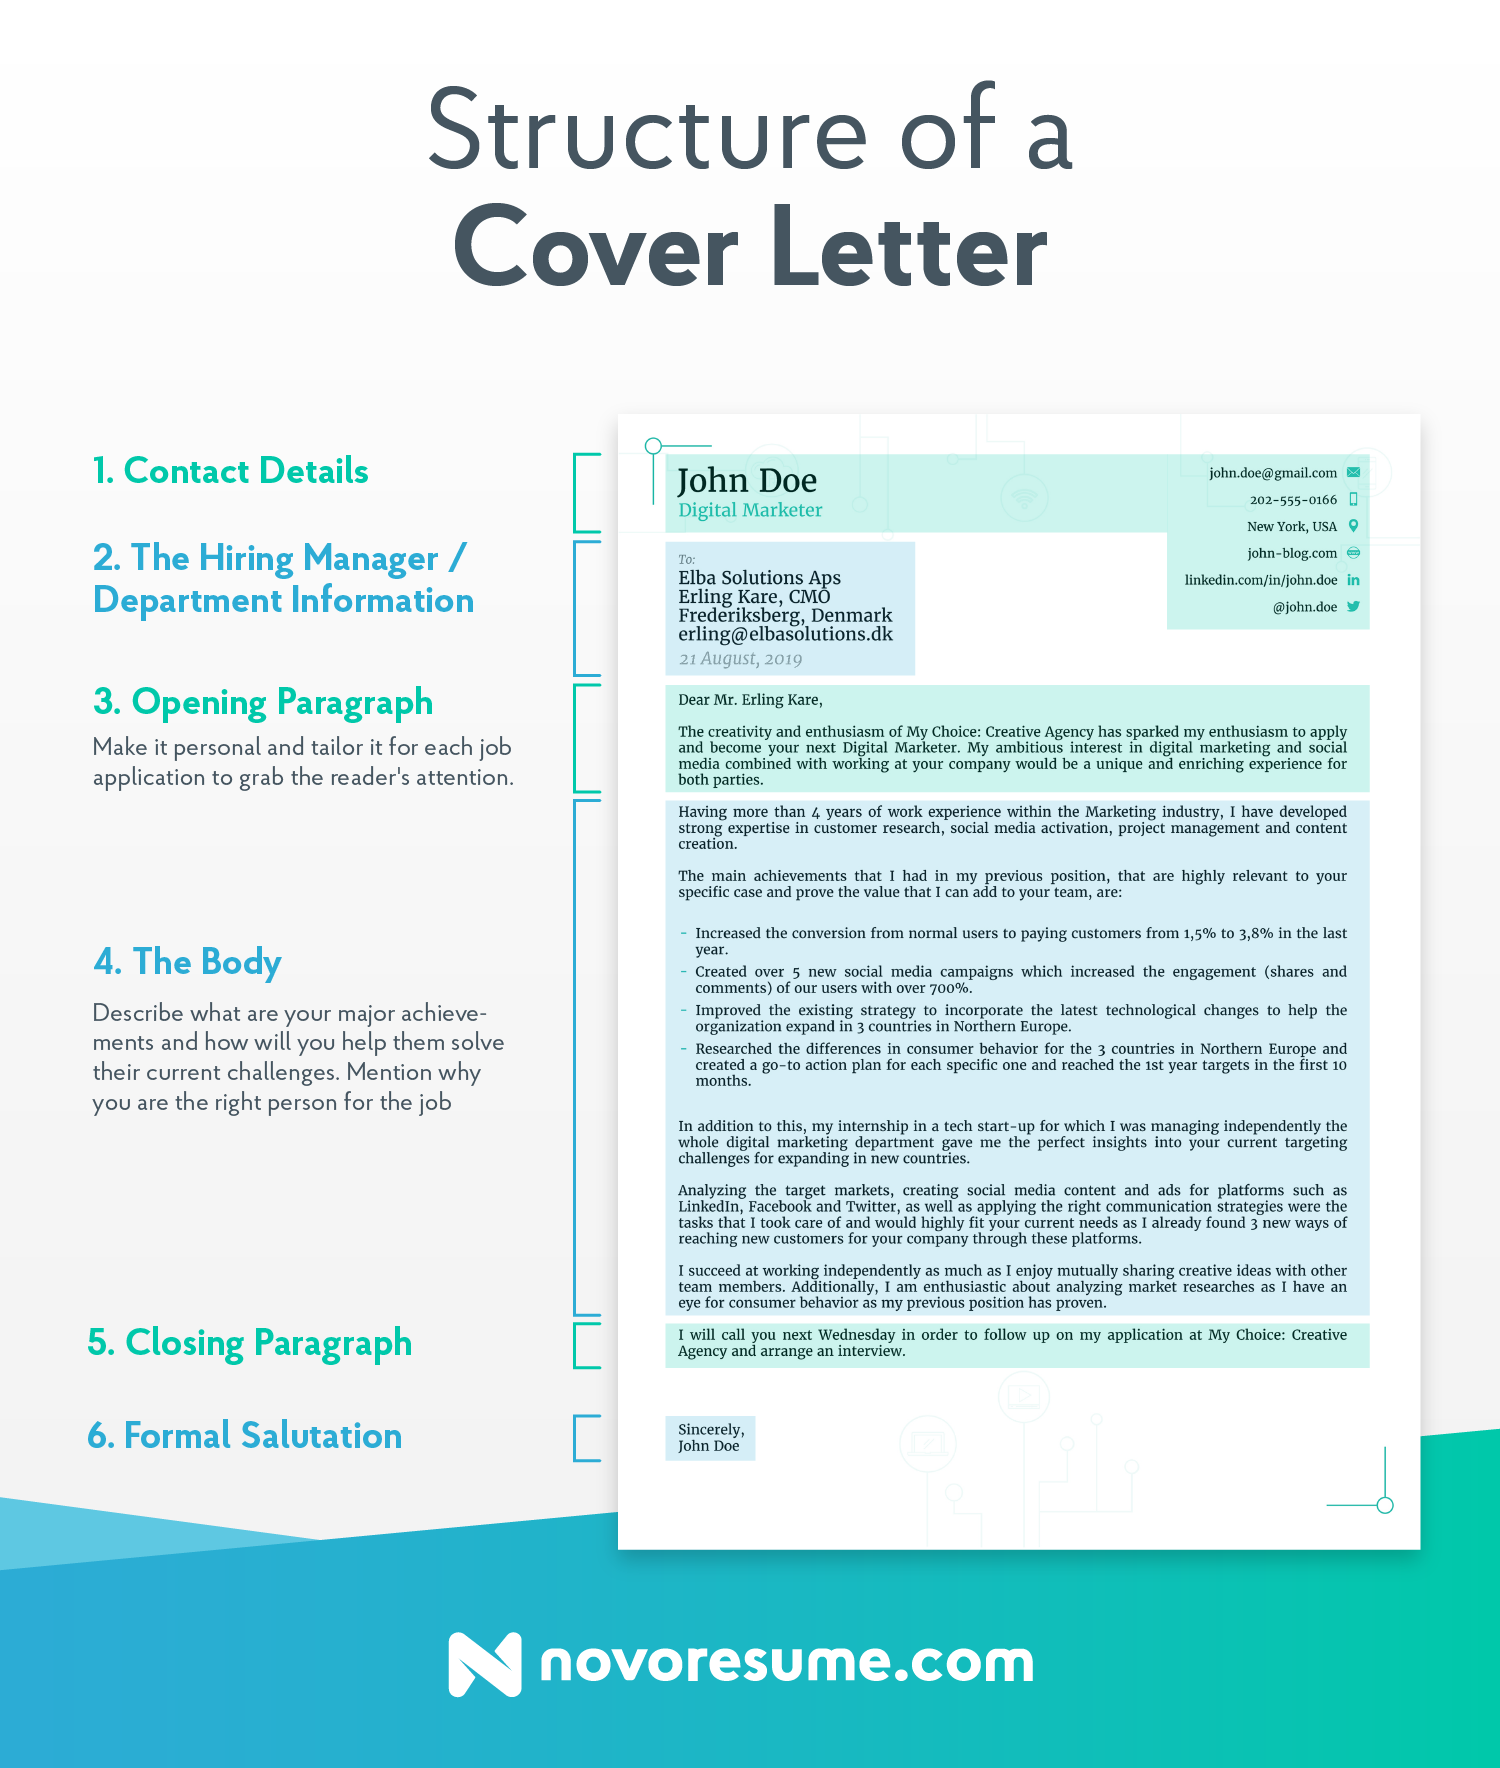 How To Write A Cover Letter In 2020 Beginner S Guide